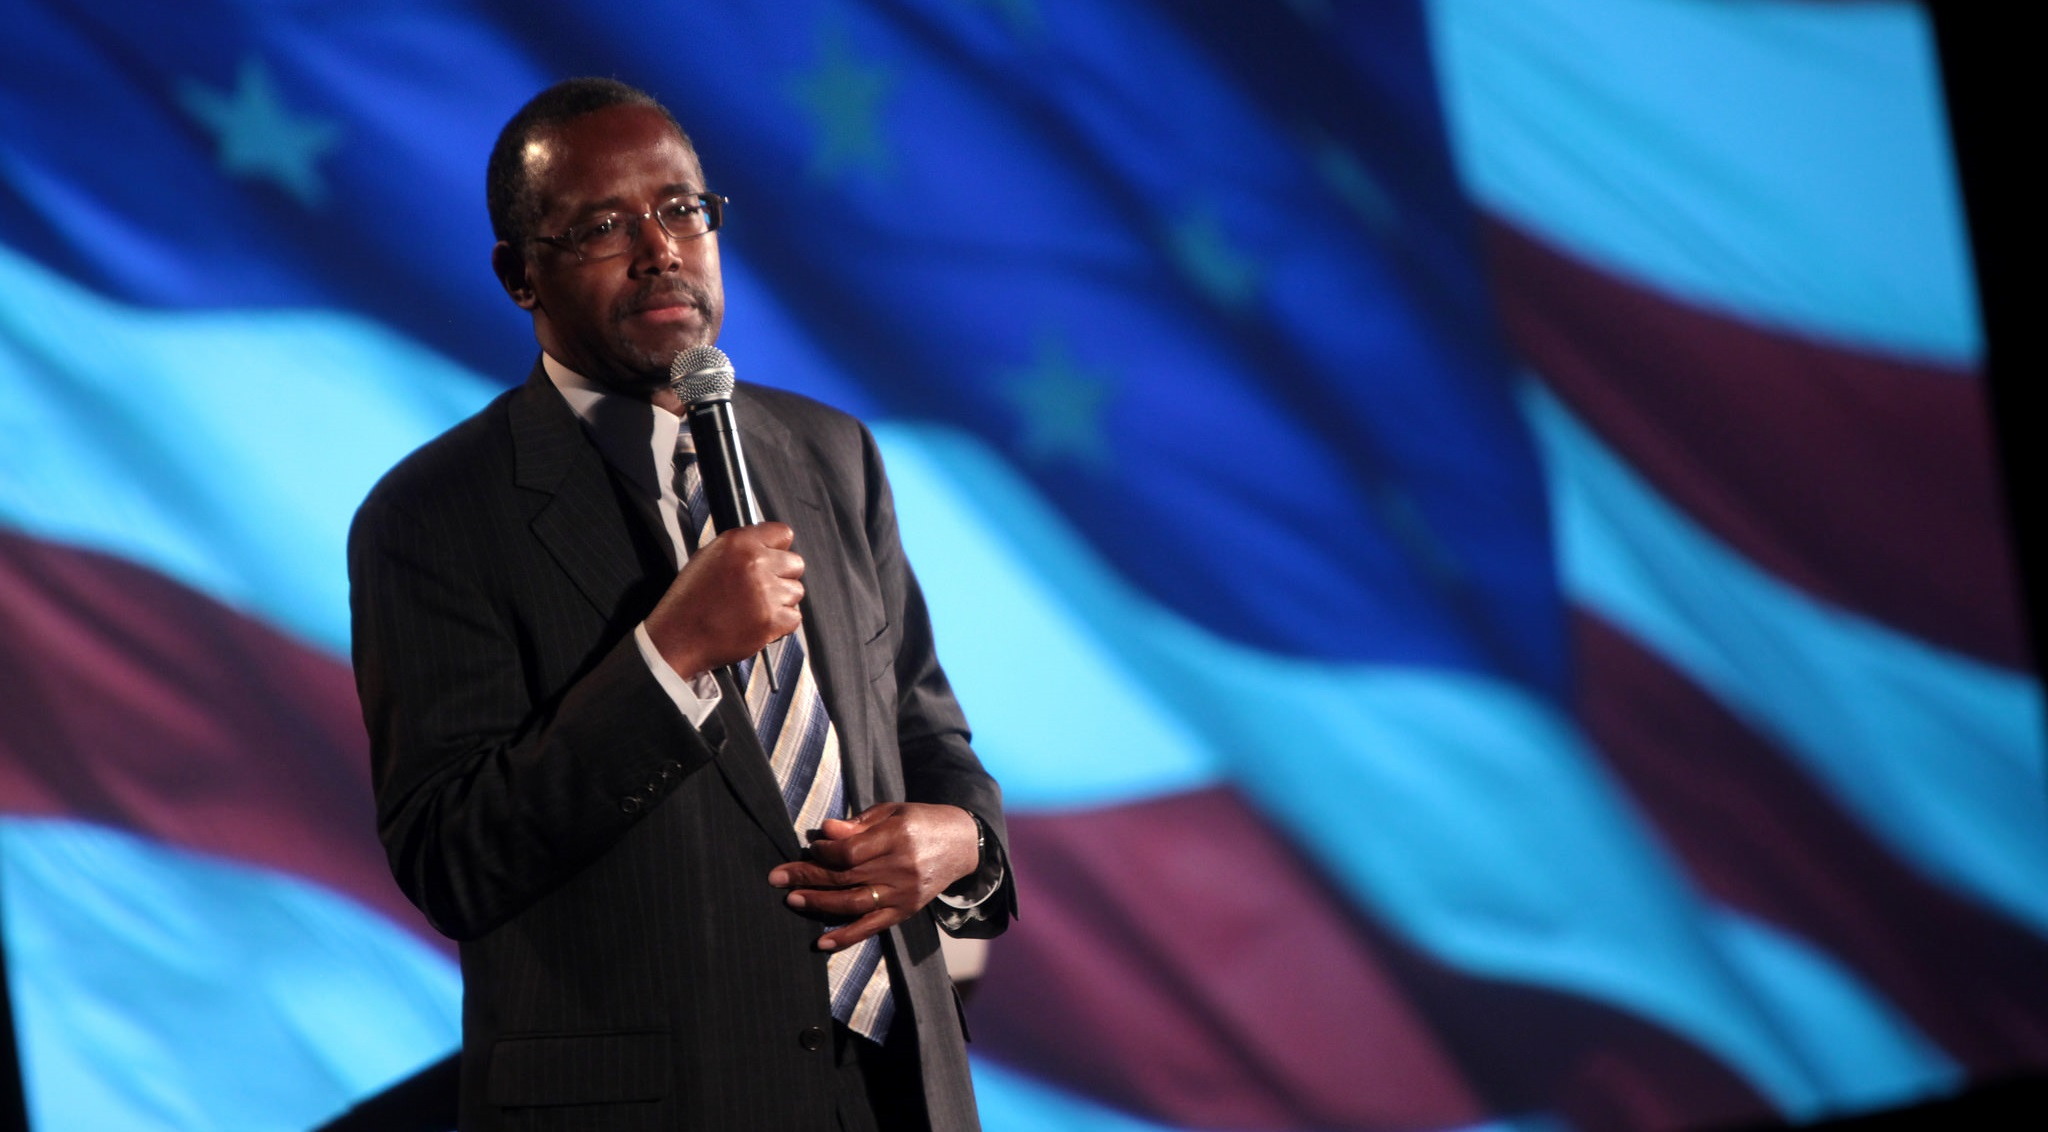 Here's how to feel about Ben Carson running for president